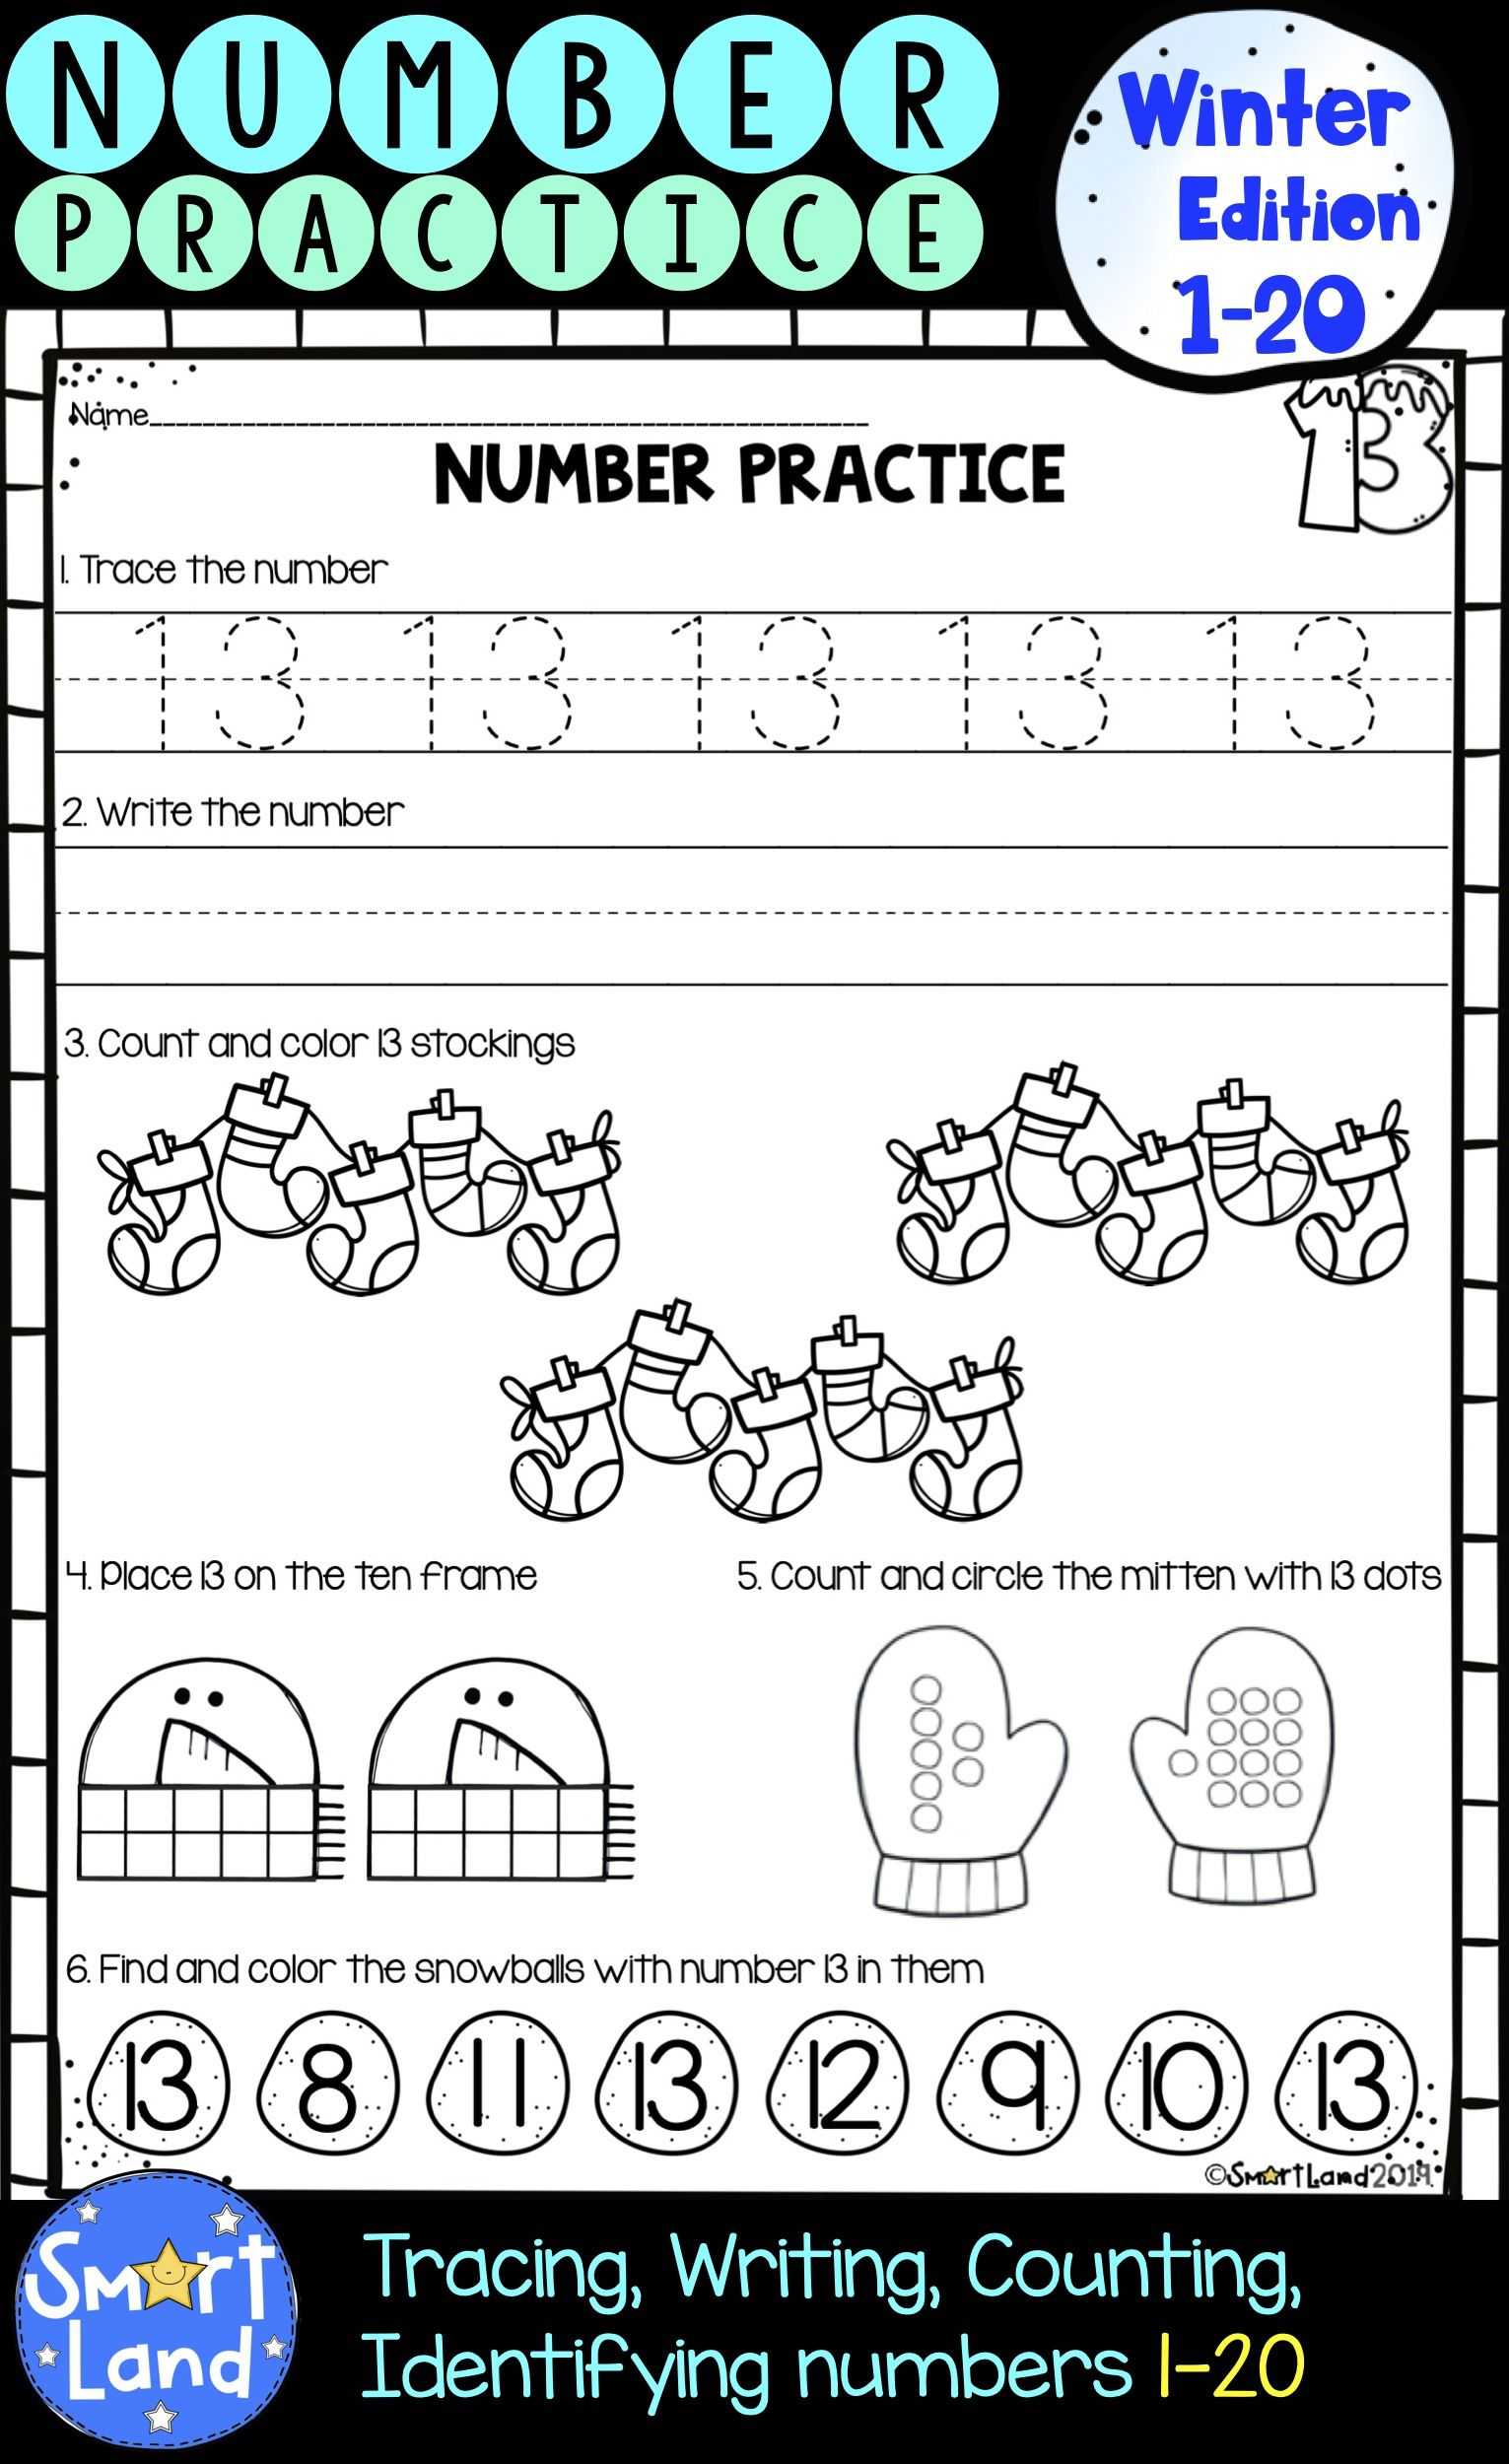 Numbers 1 20 Handwriting And Counting Practice Worksheets Winter Edition Writing Practice Pre Writing Practice Writing Numbers [ 2500 x 1531 Pixel ]